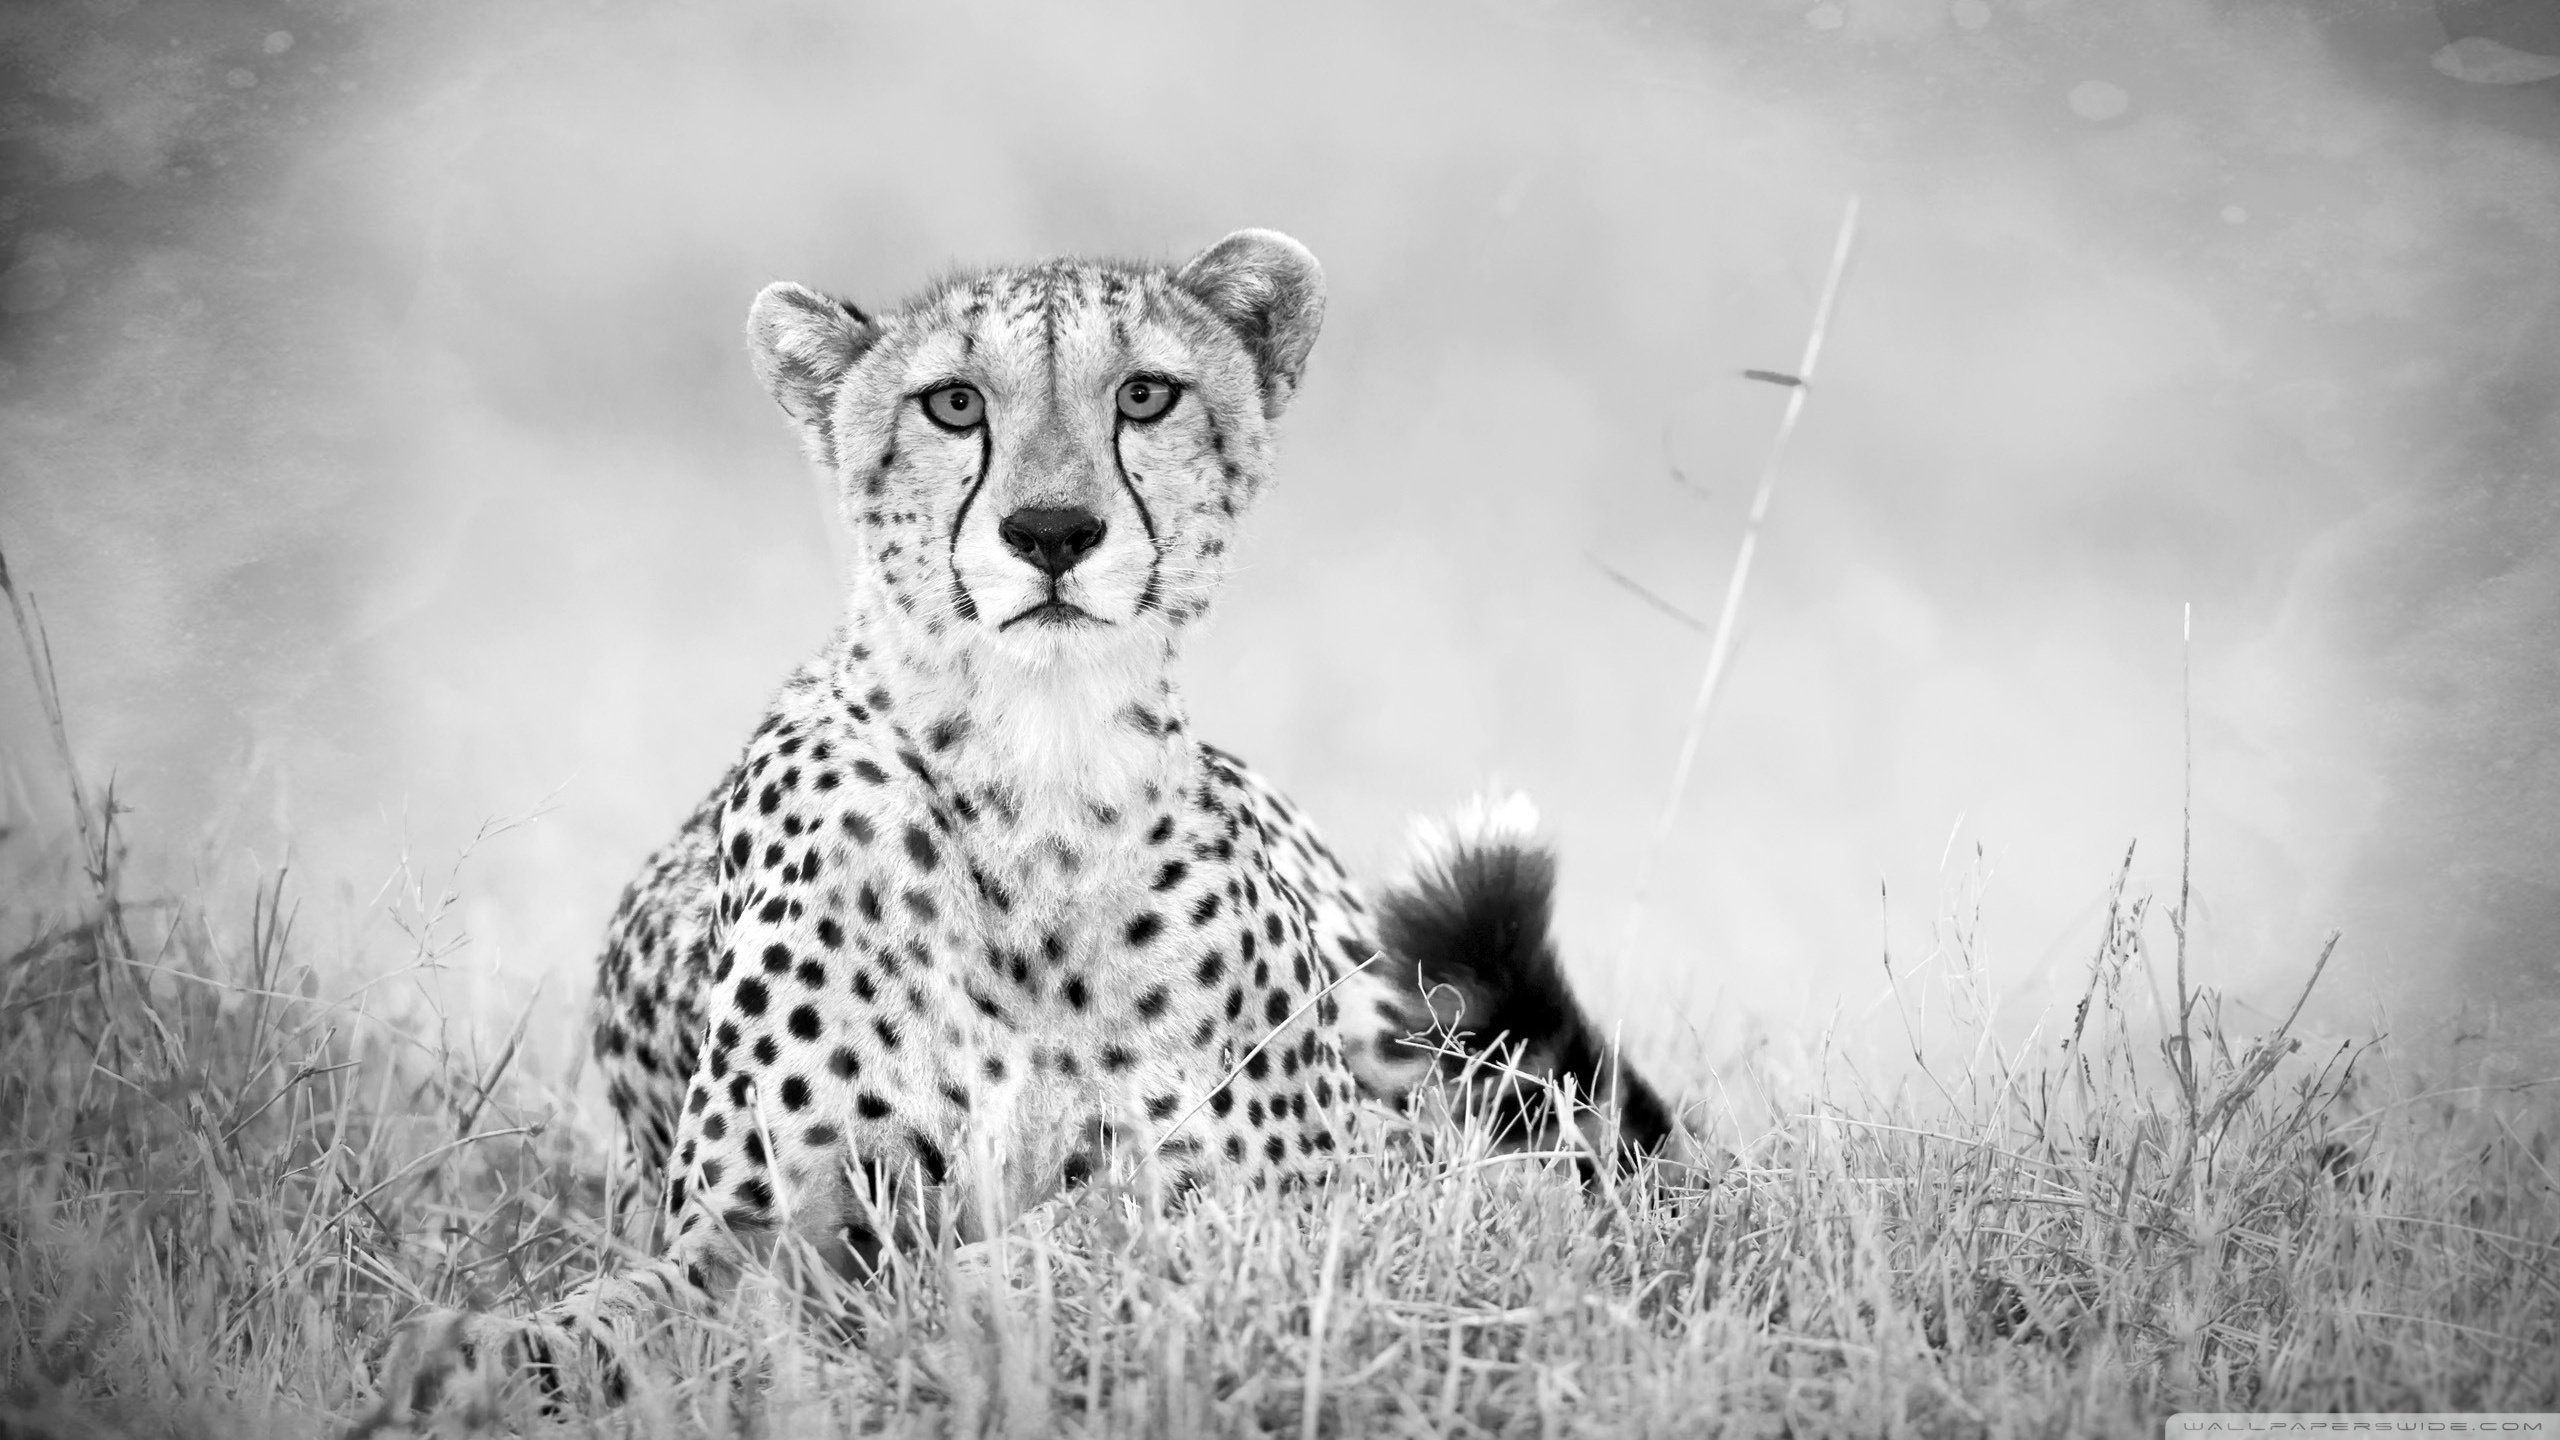 High resolution Cheetah hd 2560x1440 background ID:161899 for desktop